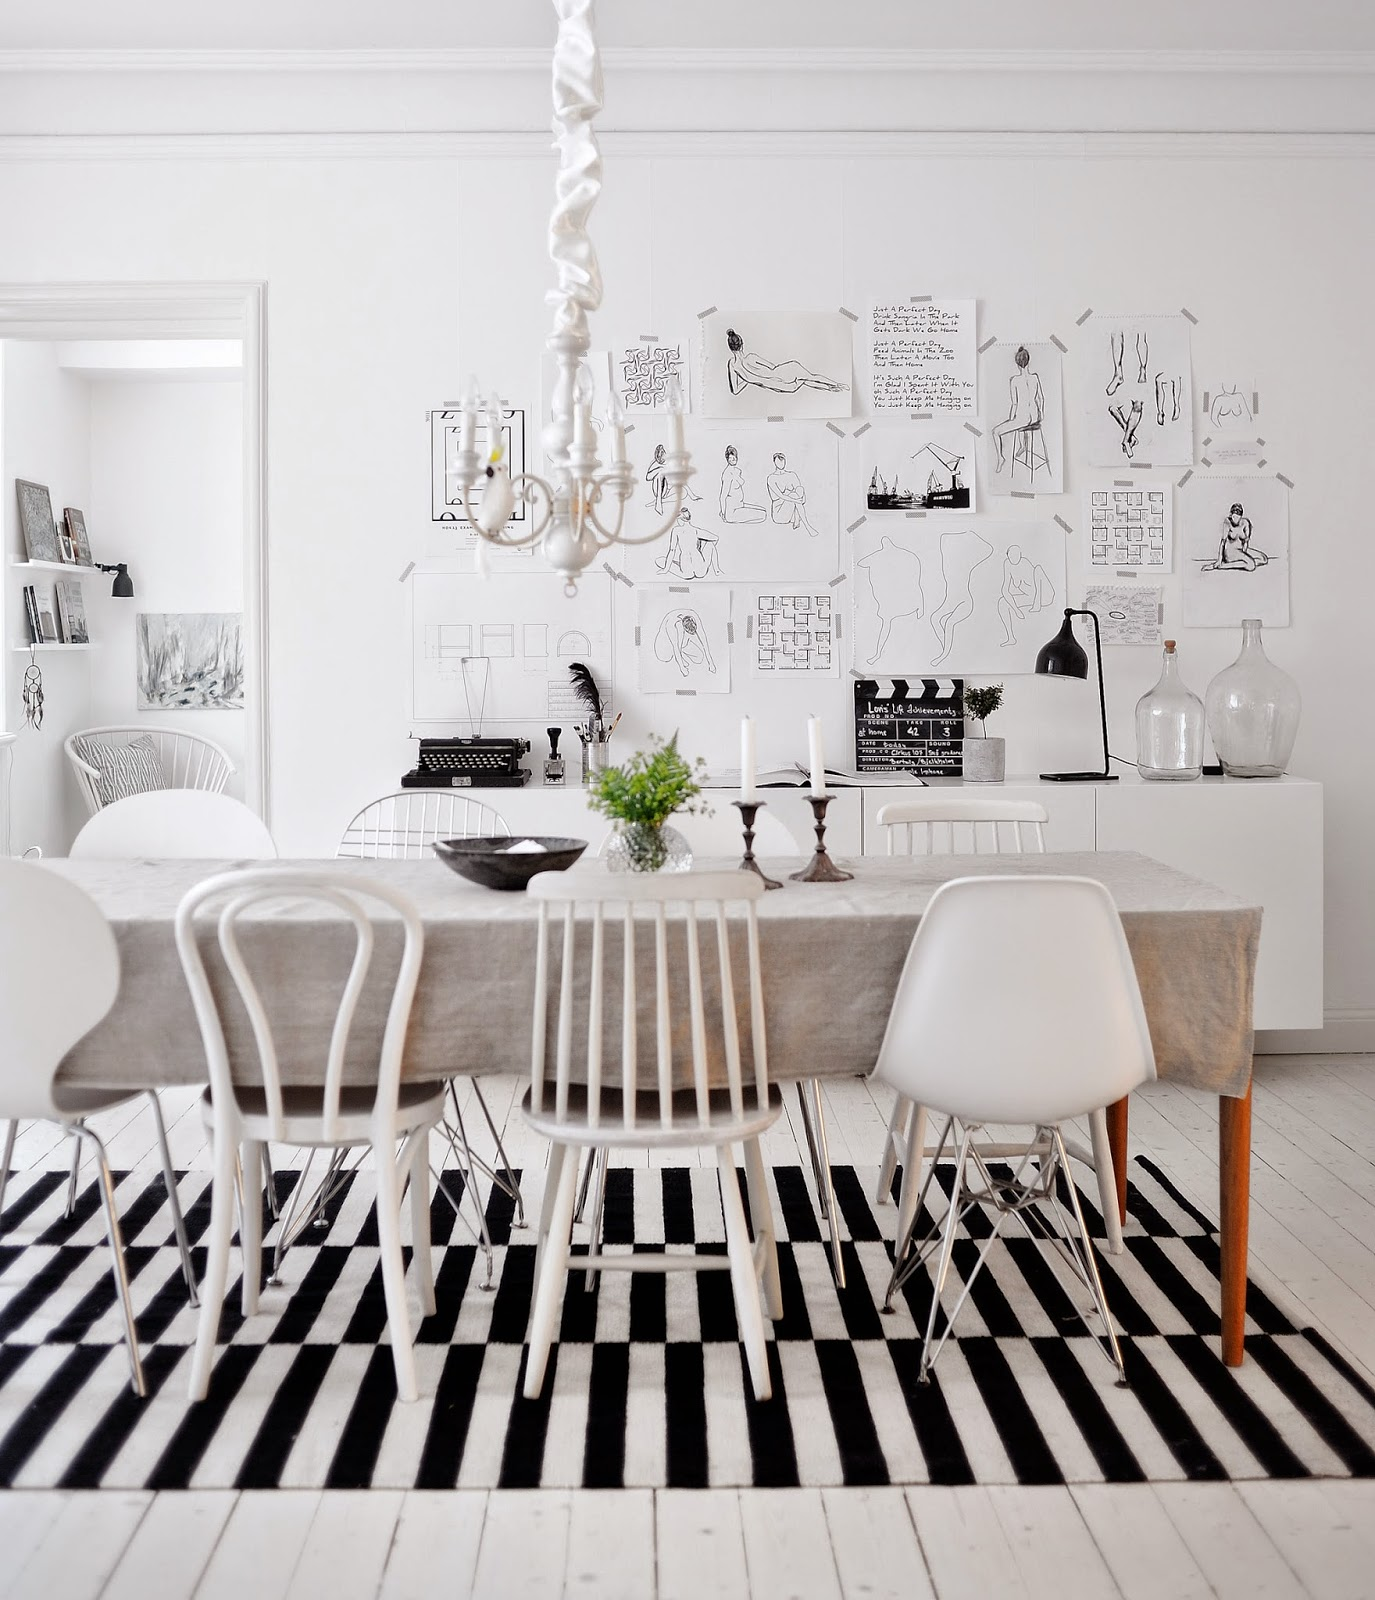 Un int rieur scandinave en blanc et noir for Interieur scandinave